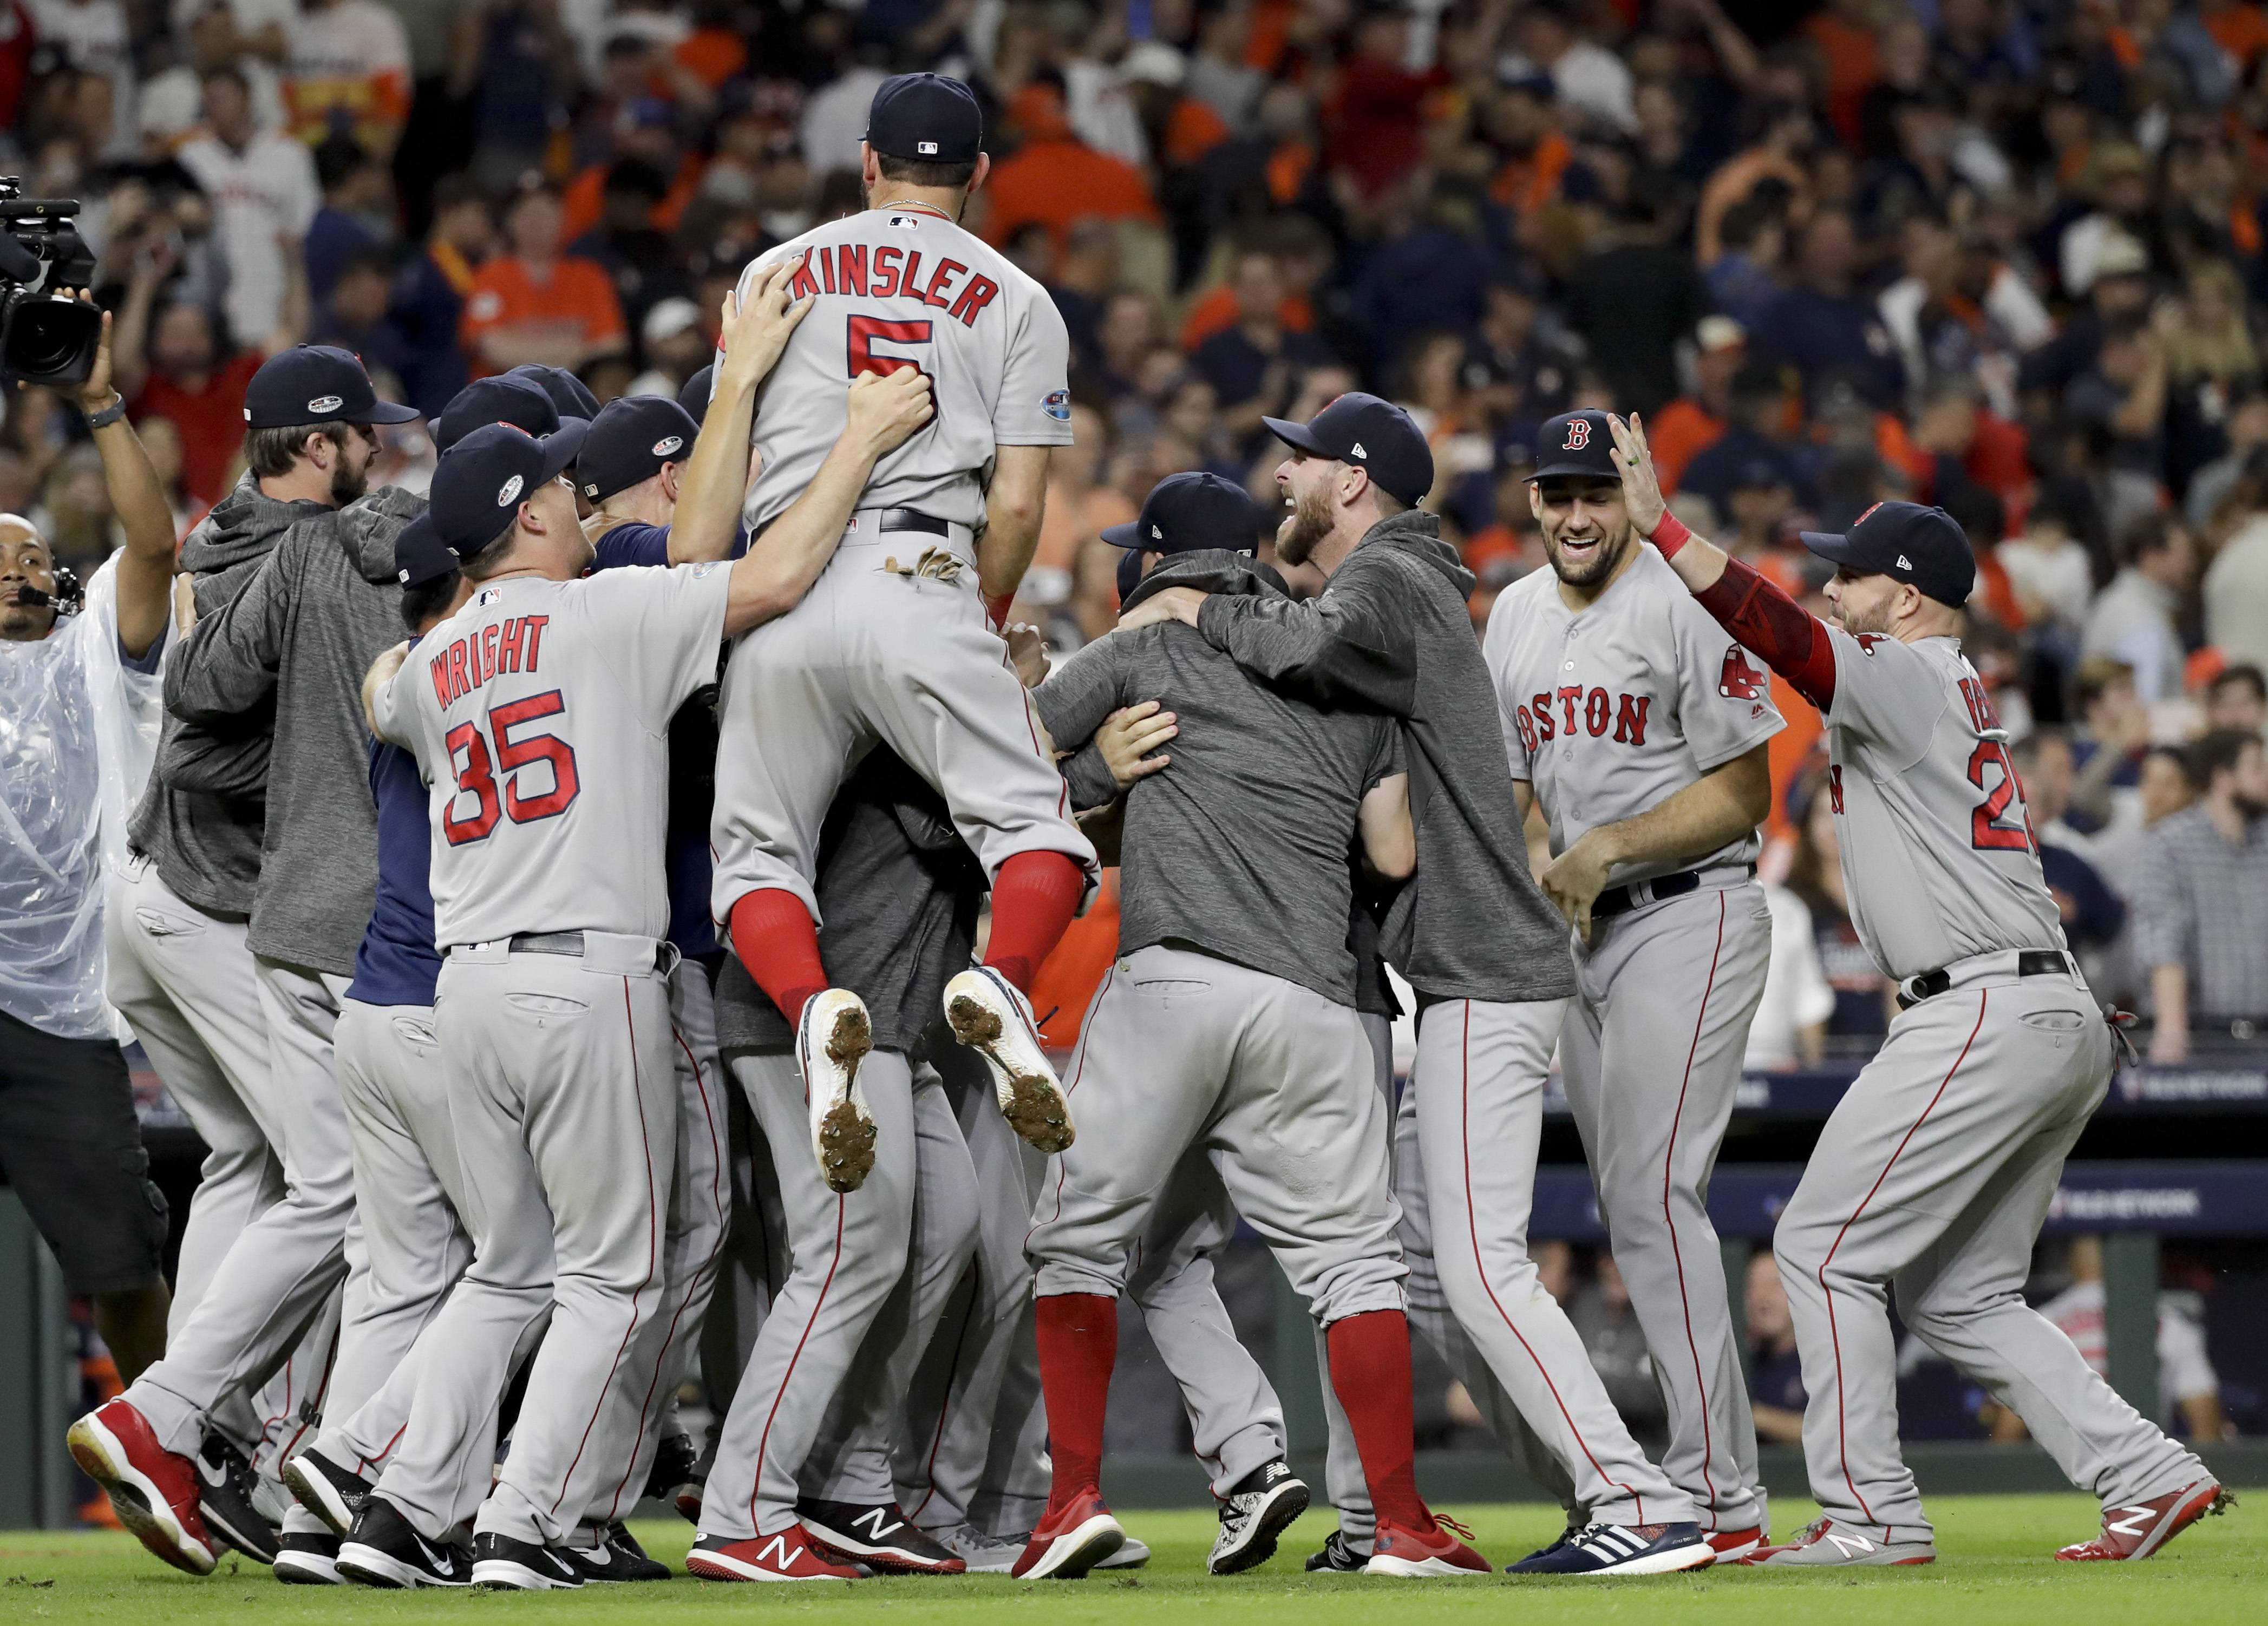 The Boston Red Sox, here celebrating after winning the American League championship series against the Houston Astros, were baseball's only real superteam this season. And even they have flaws.